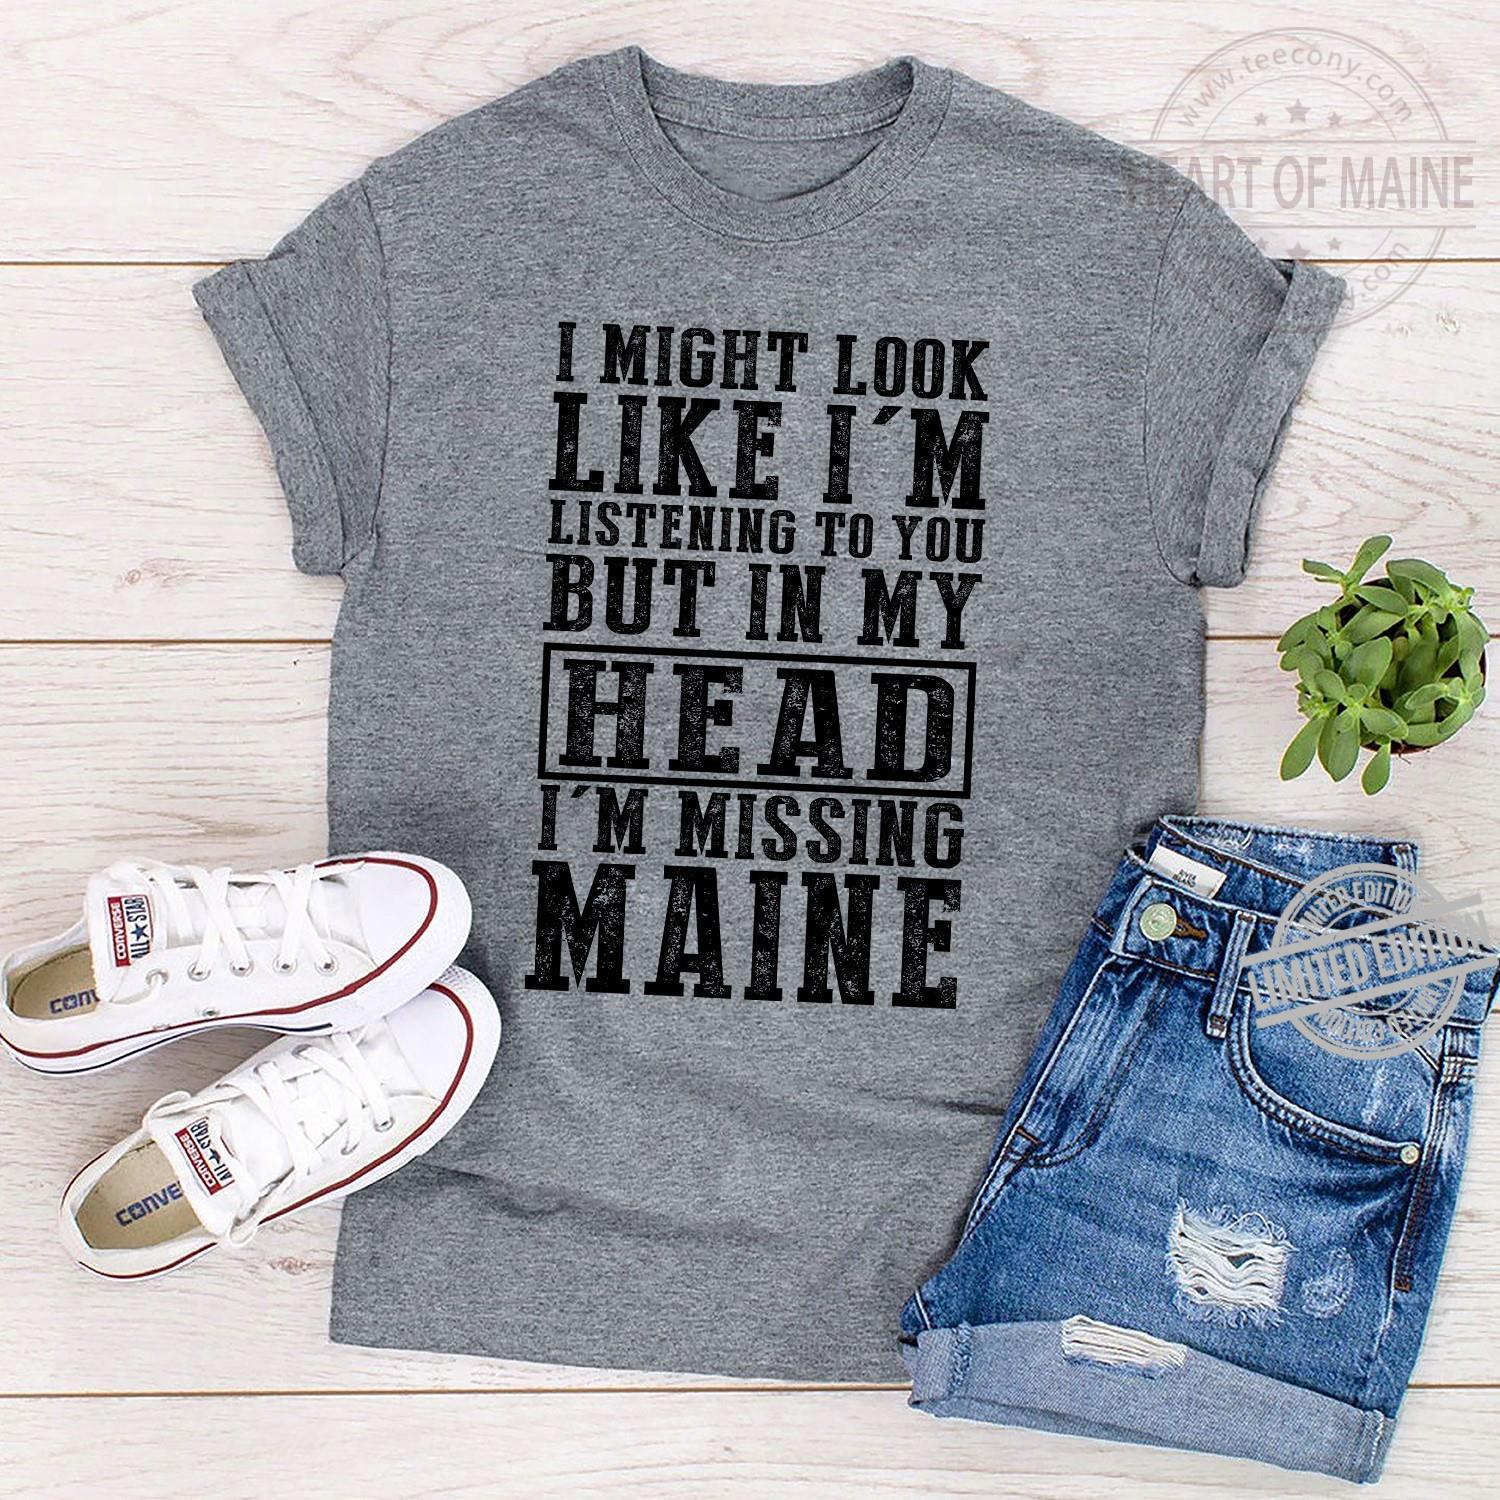 I MIght Look Like I'm Listening To You But In My Head I'm Missing Maine Shirt